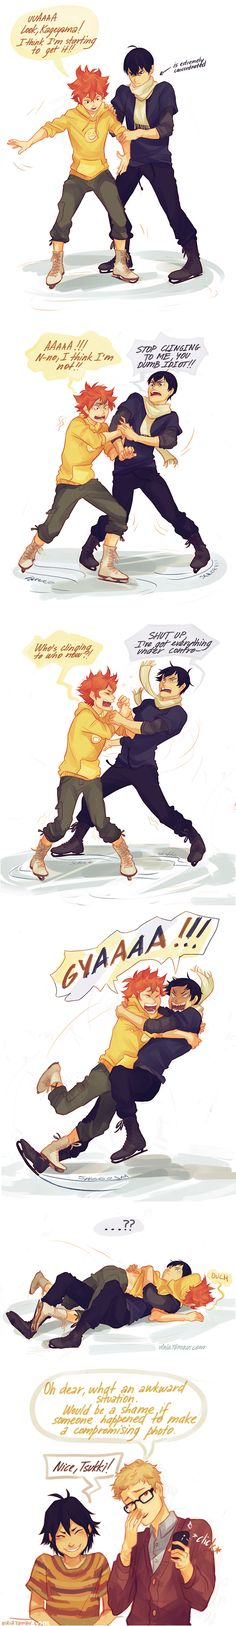 Haikyuu!! ~~ Ah, the Karasuno First Years go ice skating. What COULD go wrong? :: Artwork by viria.tumblr.com